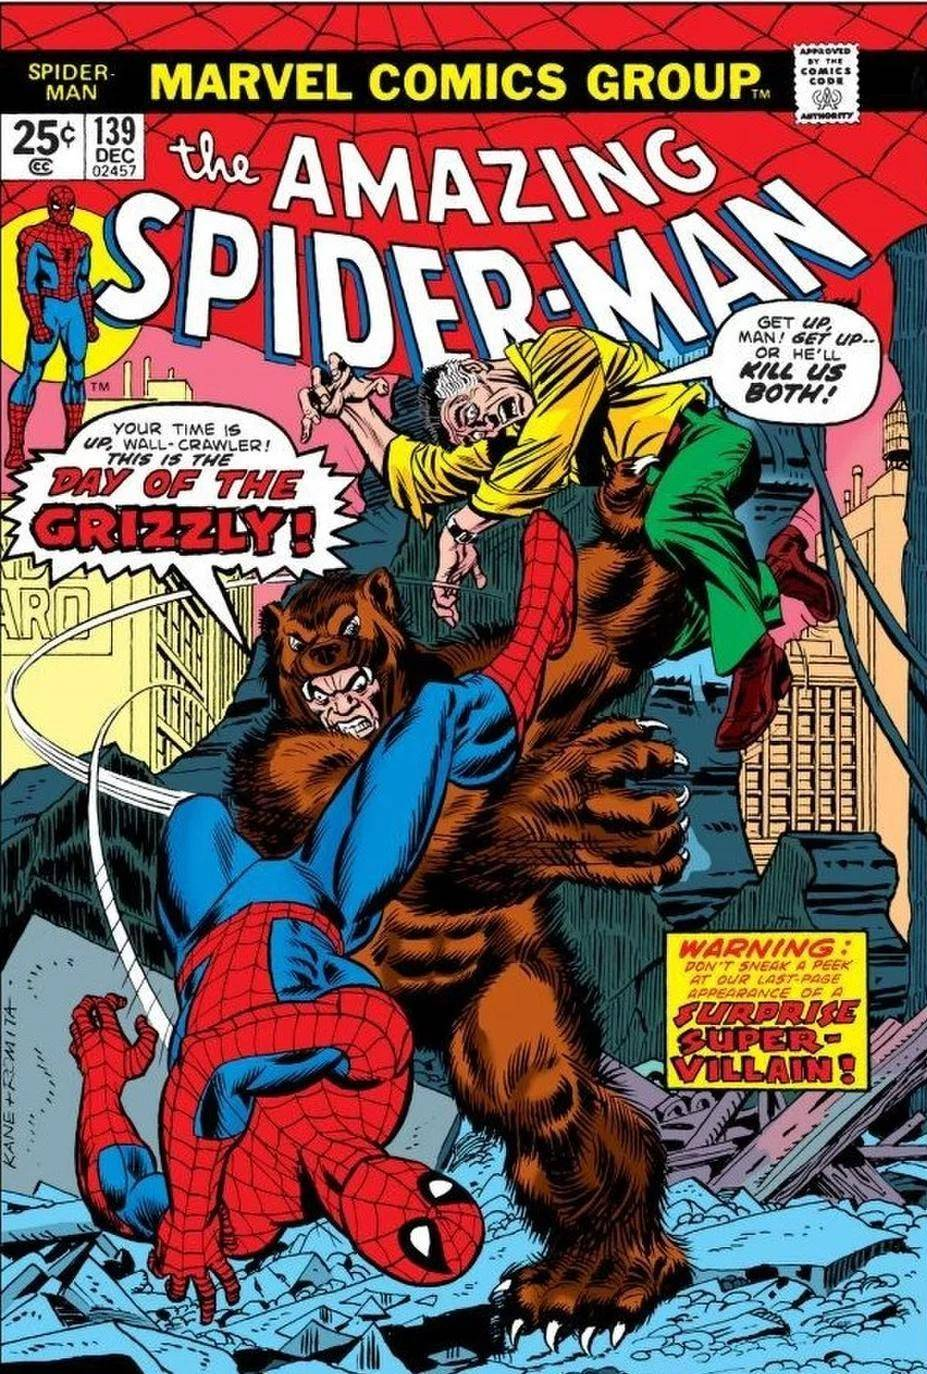 Amazing Spider-Man #139 (1974)